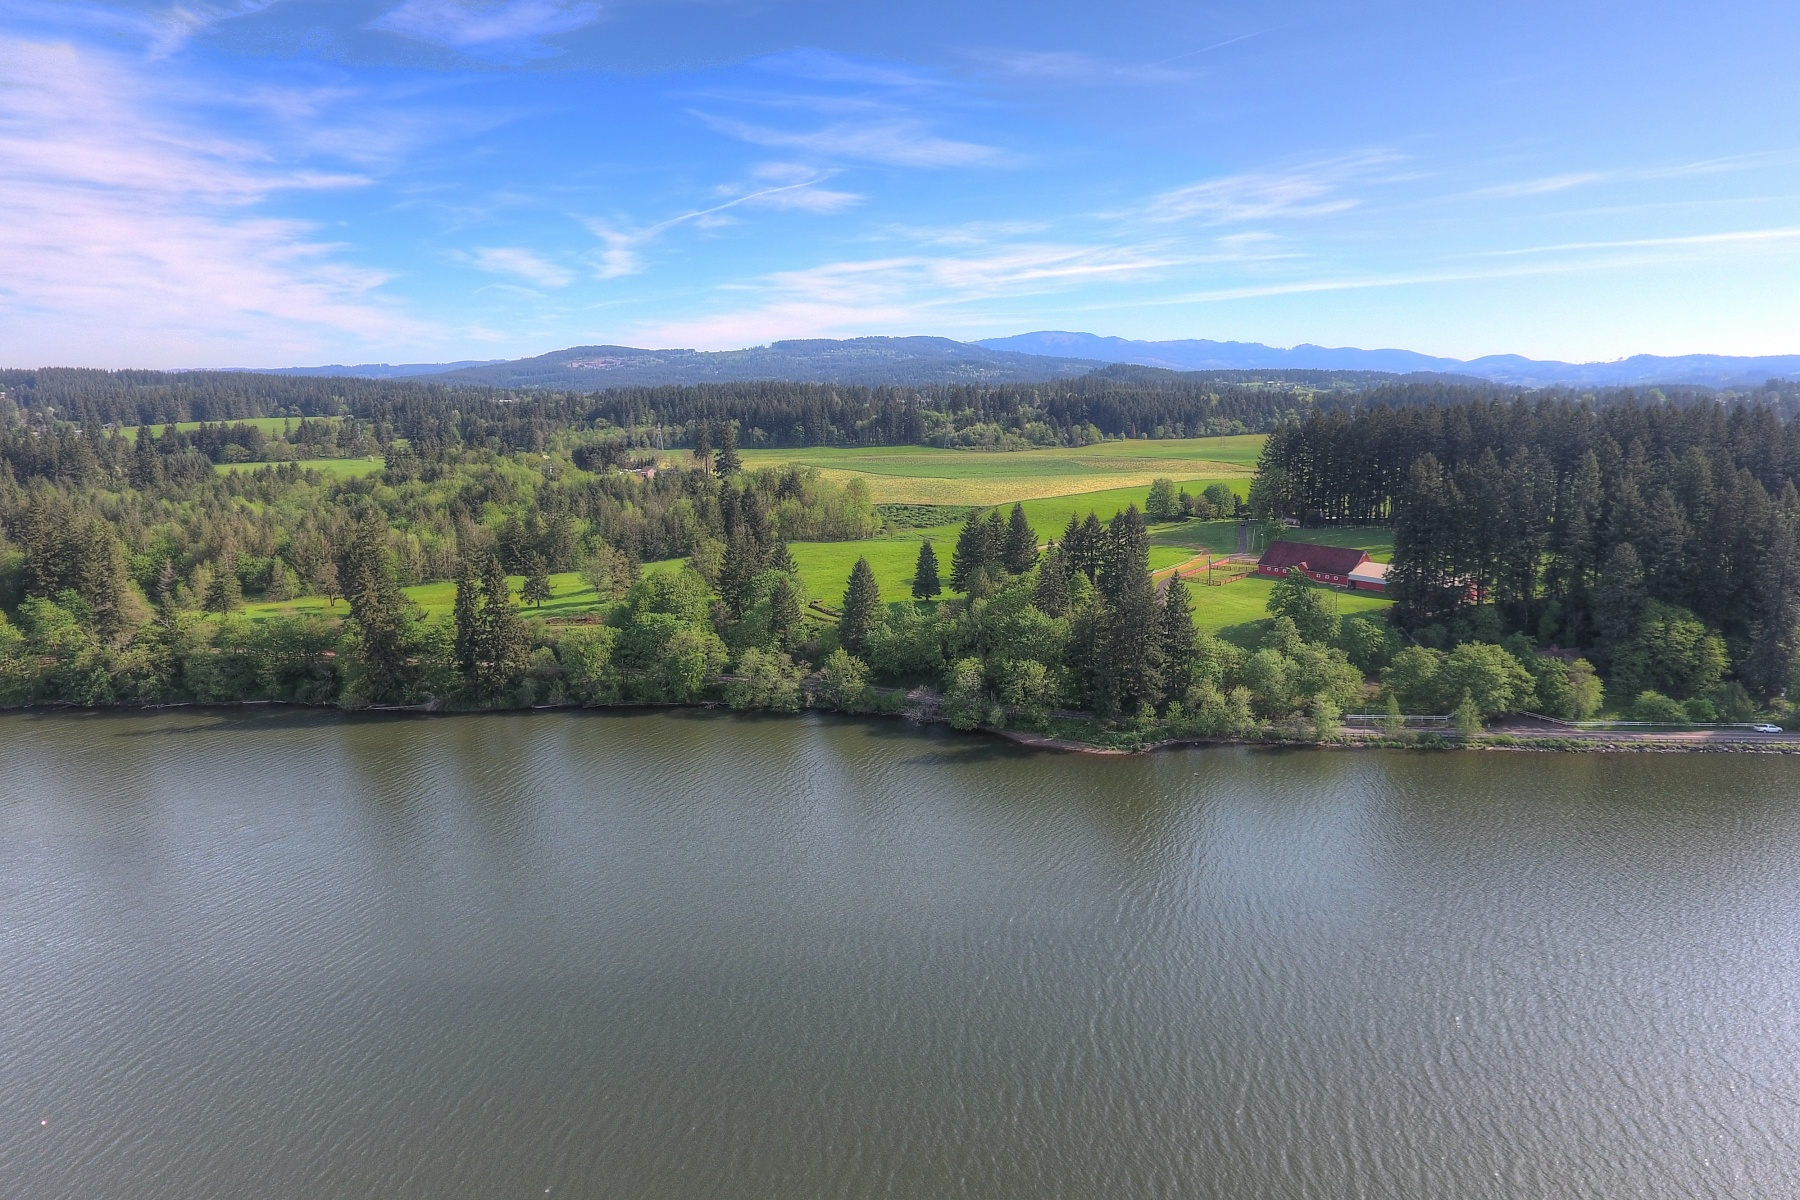 Terreno por un Venta en Lacamas Lake Opportunity 215 SE LEADBETTER Rd Camas, Washington 98607 Estados Unidos